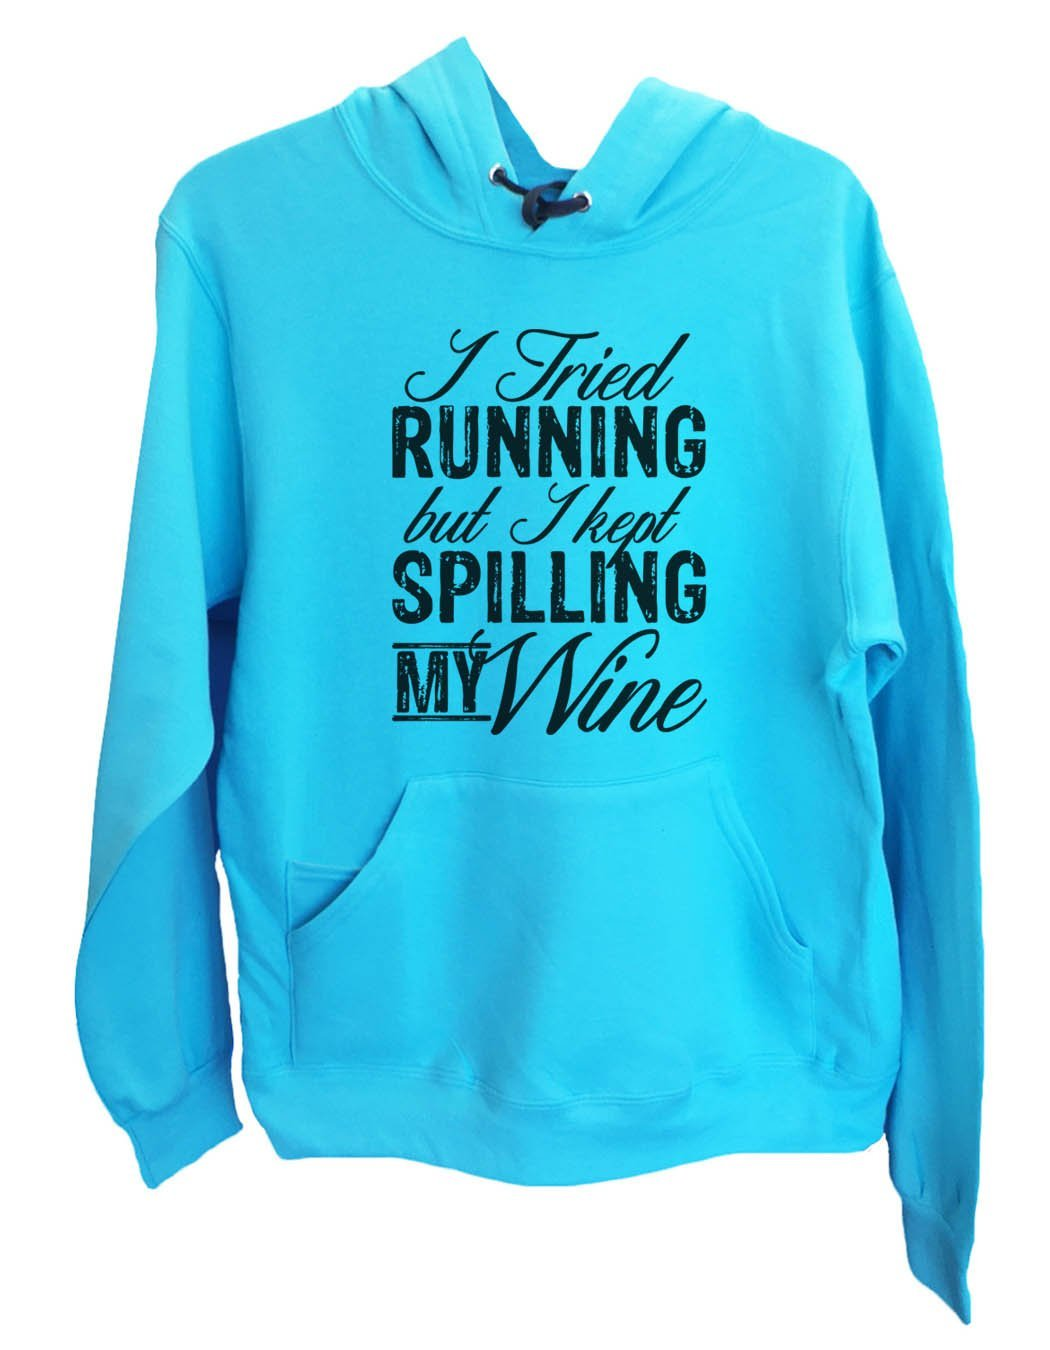 UNISEX HOODIE - I Tried Running But I Kept Spilling My Wine - FUNNY MENS AND WOMENS HOODED SWEATSHIRTS - 2160 Funny Shirt